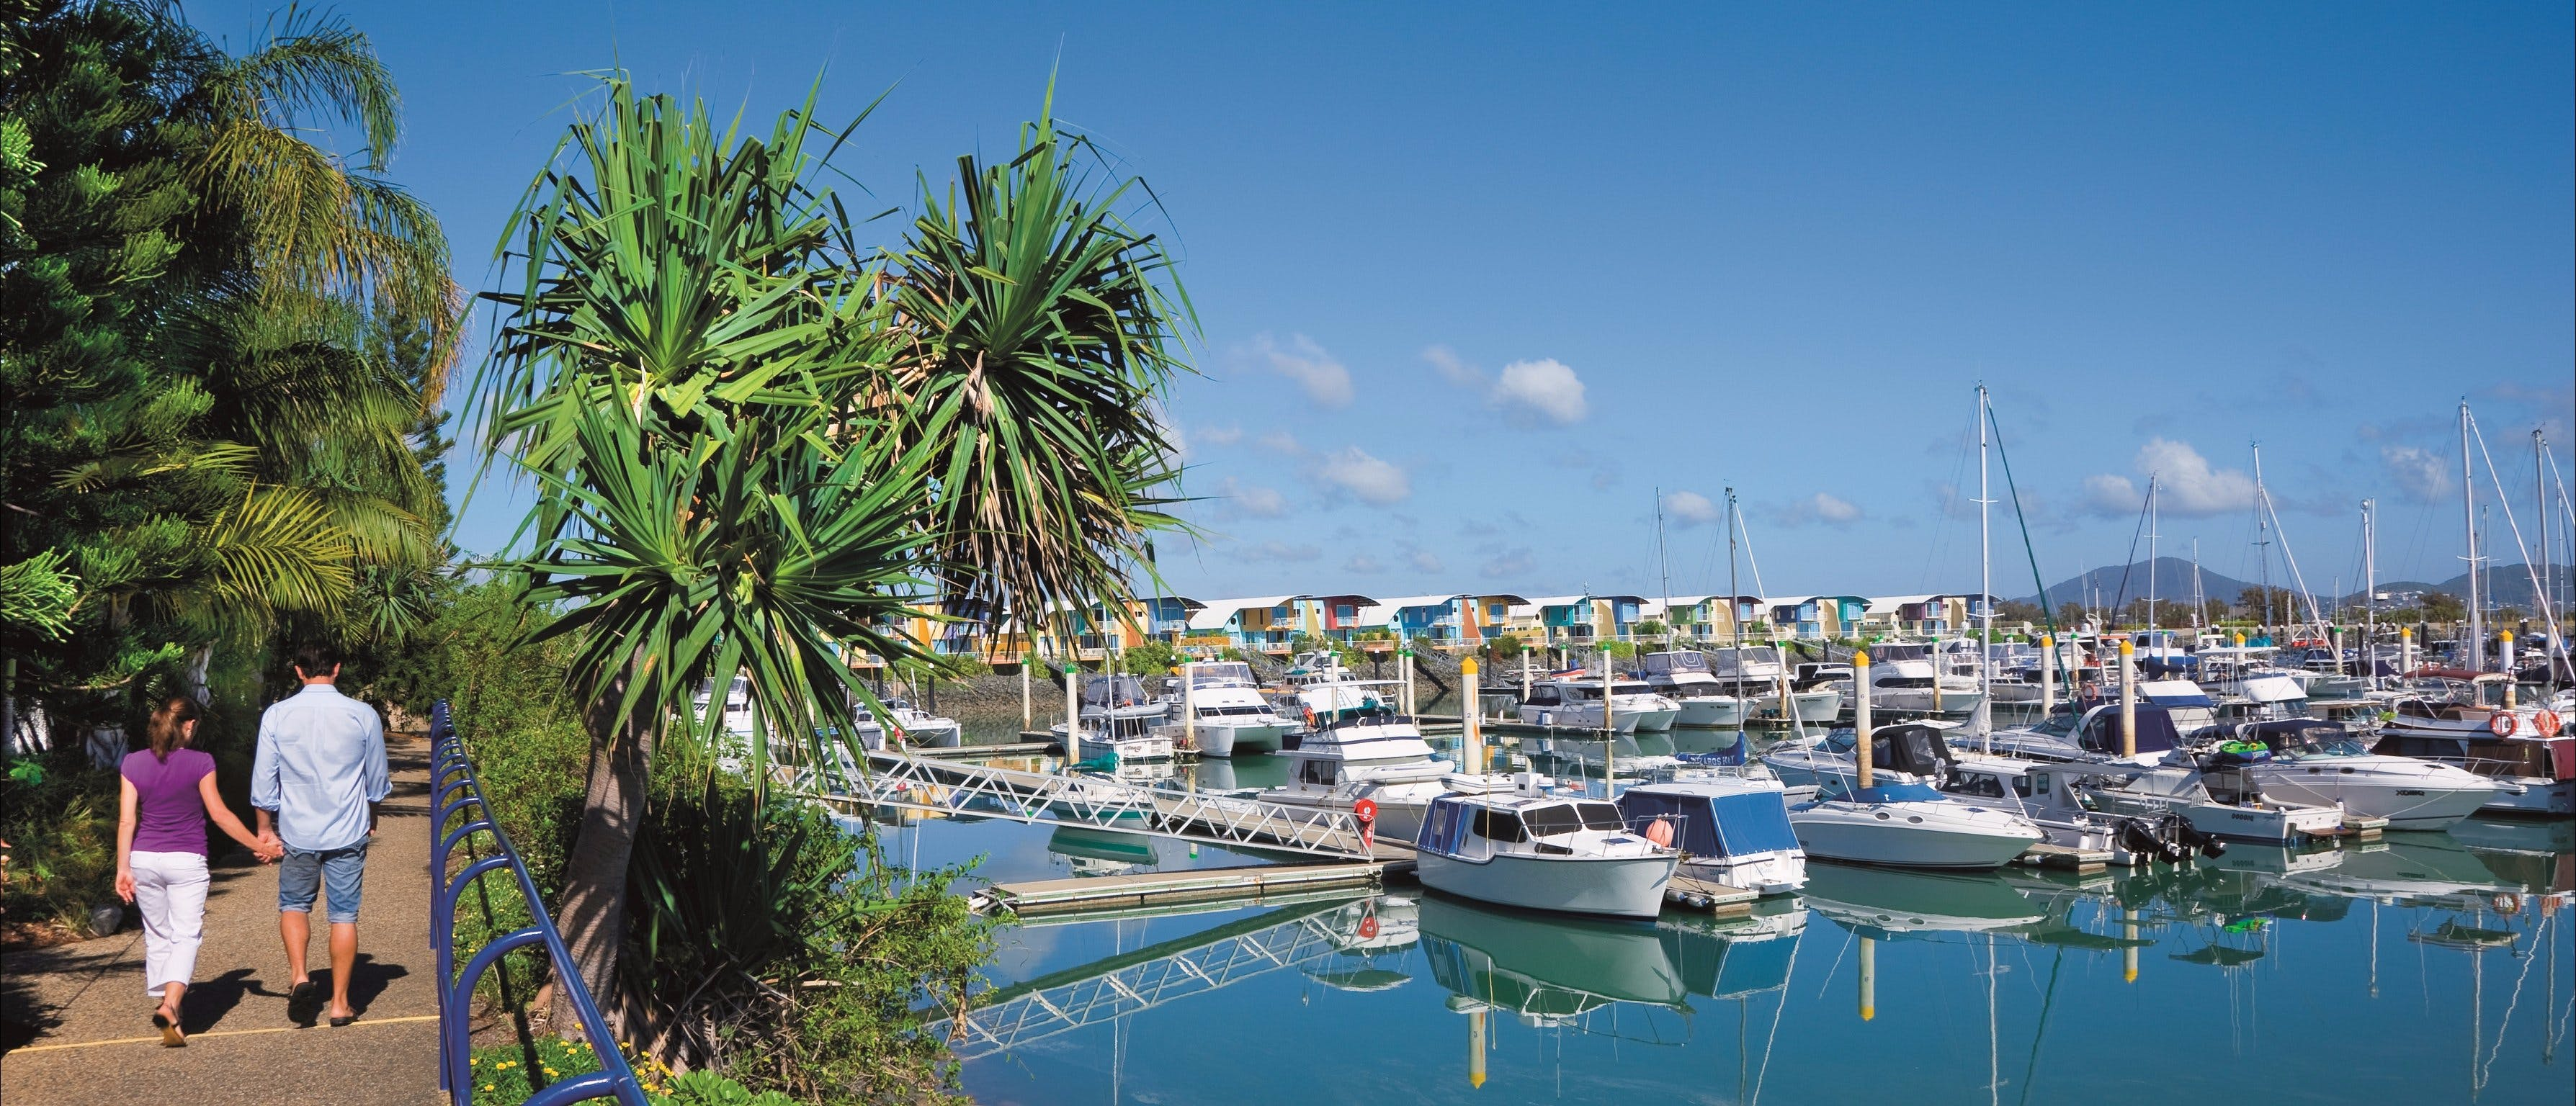 Keppel Bay Fishing Adventure - Palm Beach Accommodation